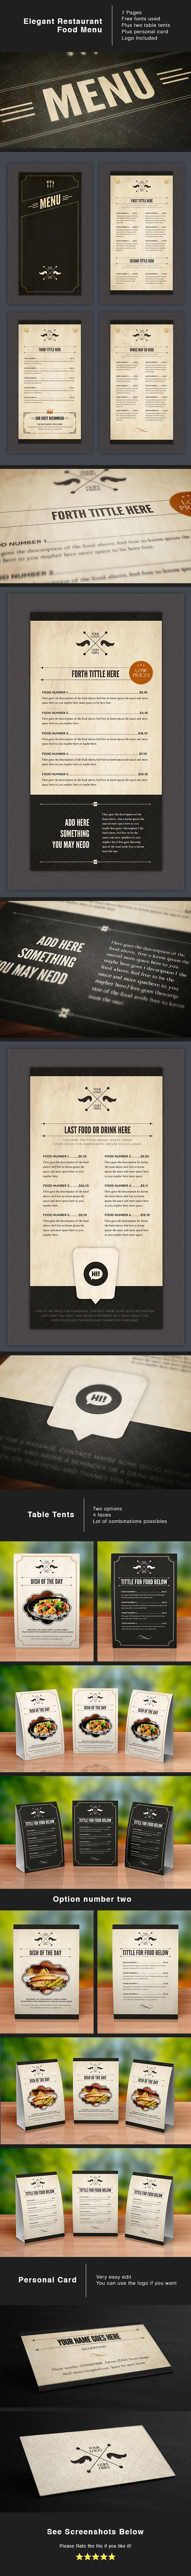 Design food Stationery for sale at: https://creativemarket.com/LuuqasDesign/181020-Elegant-Food-Menu-5?u=LuuqasDesign